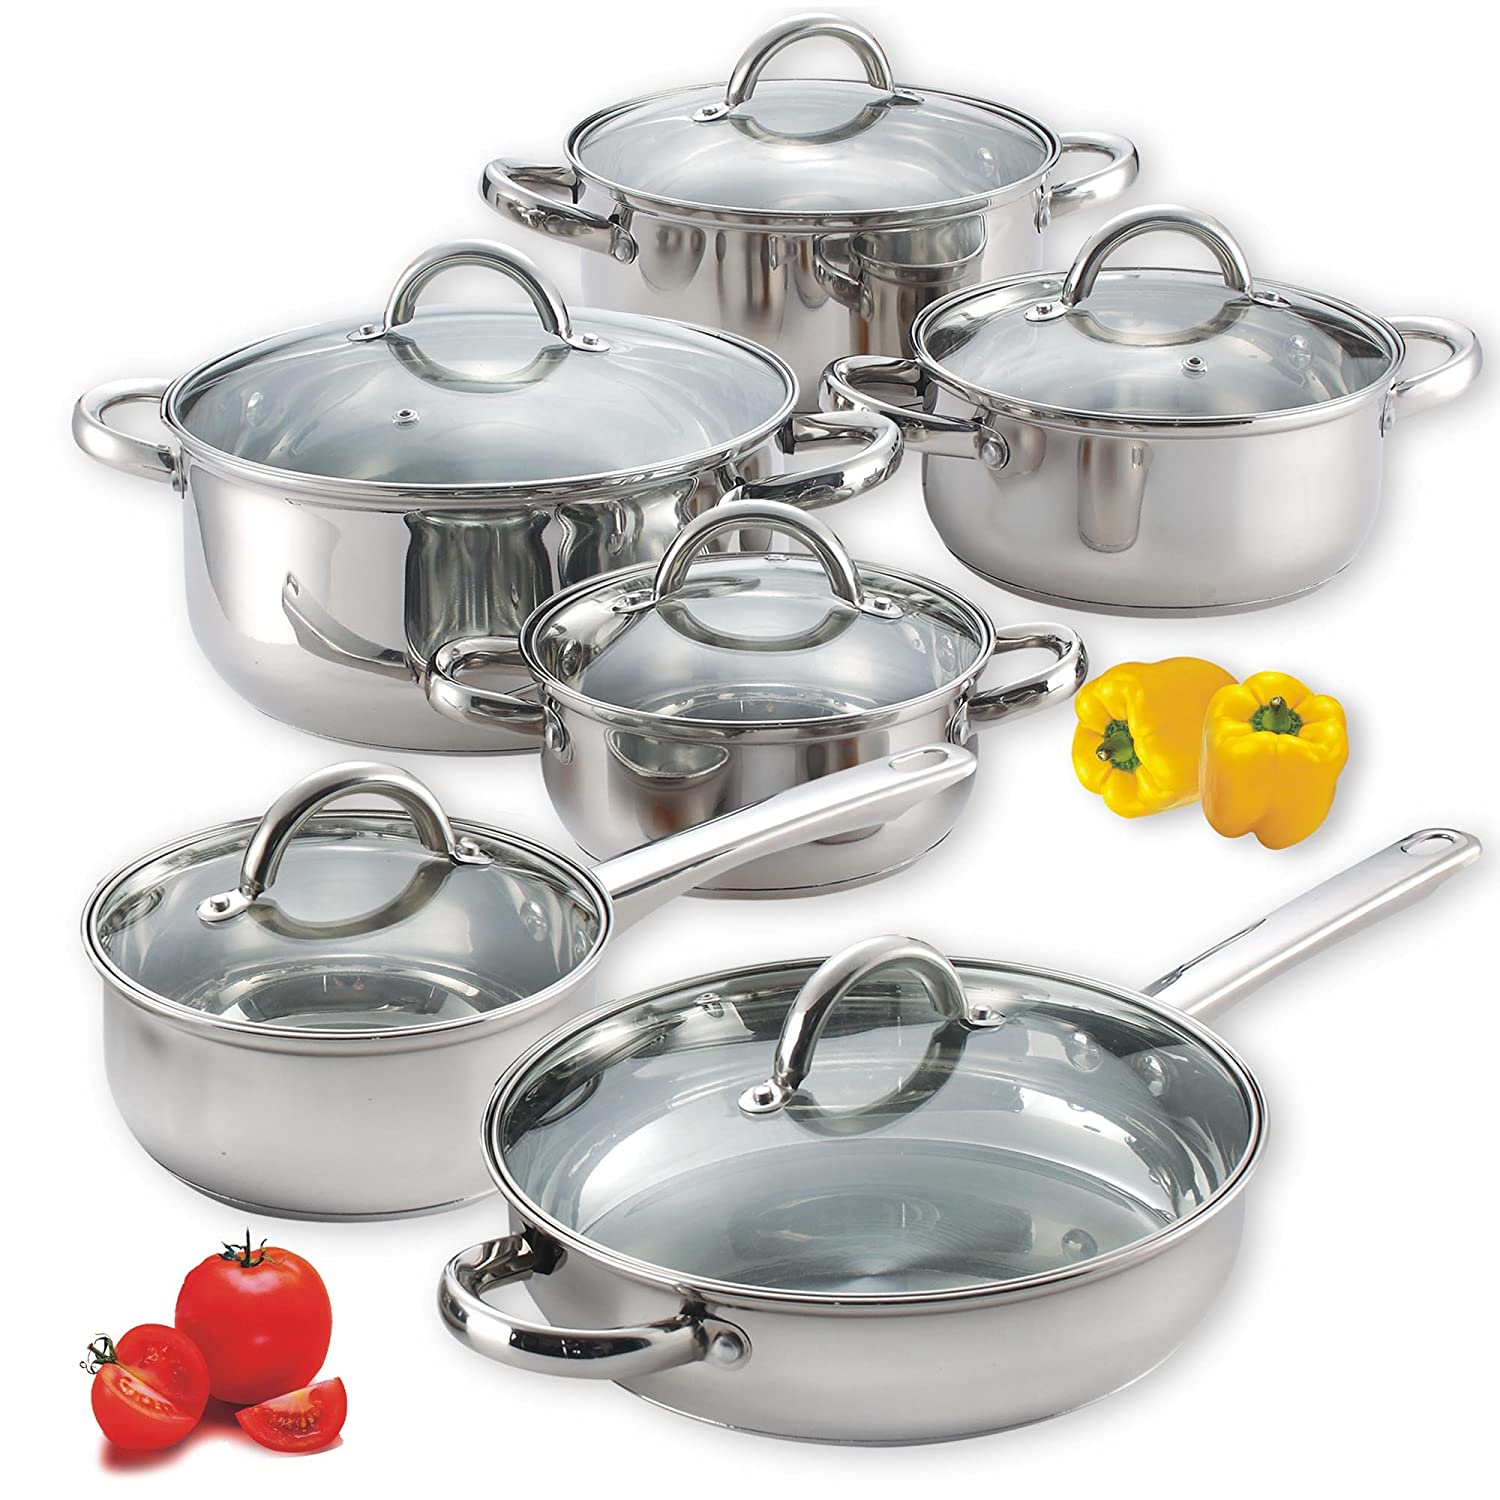 Cook N Home 12-Piece Stainless Steel Cookware Set NC-00250